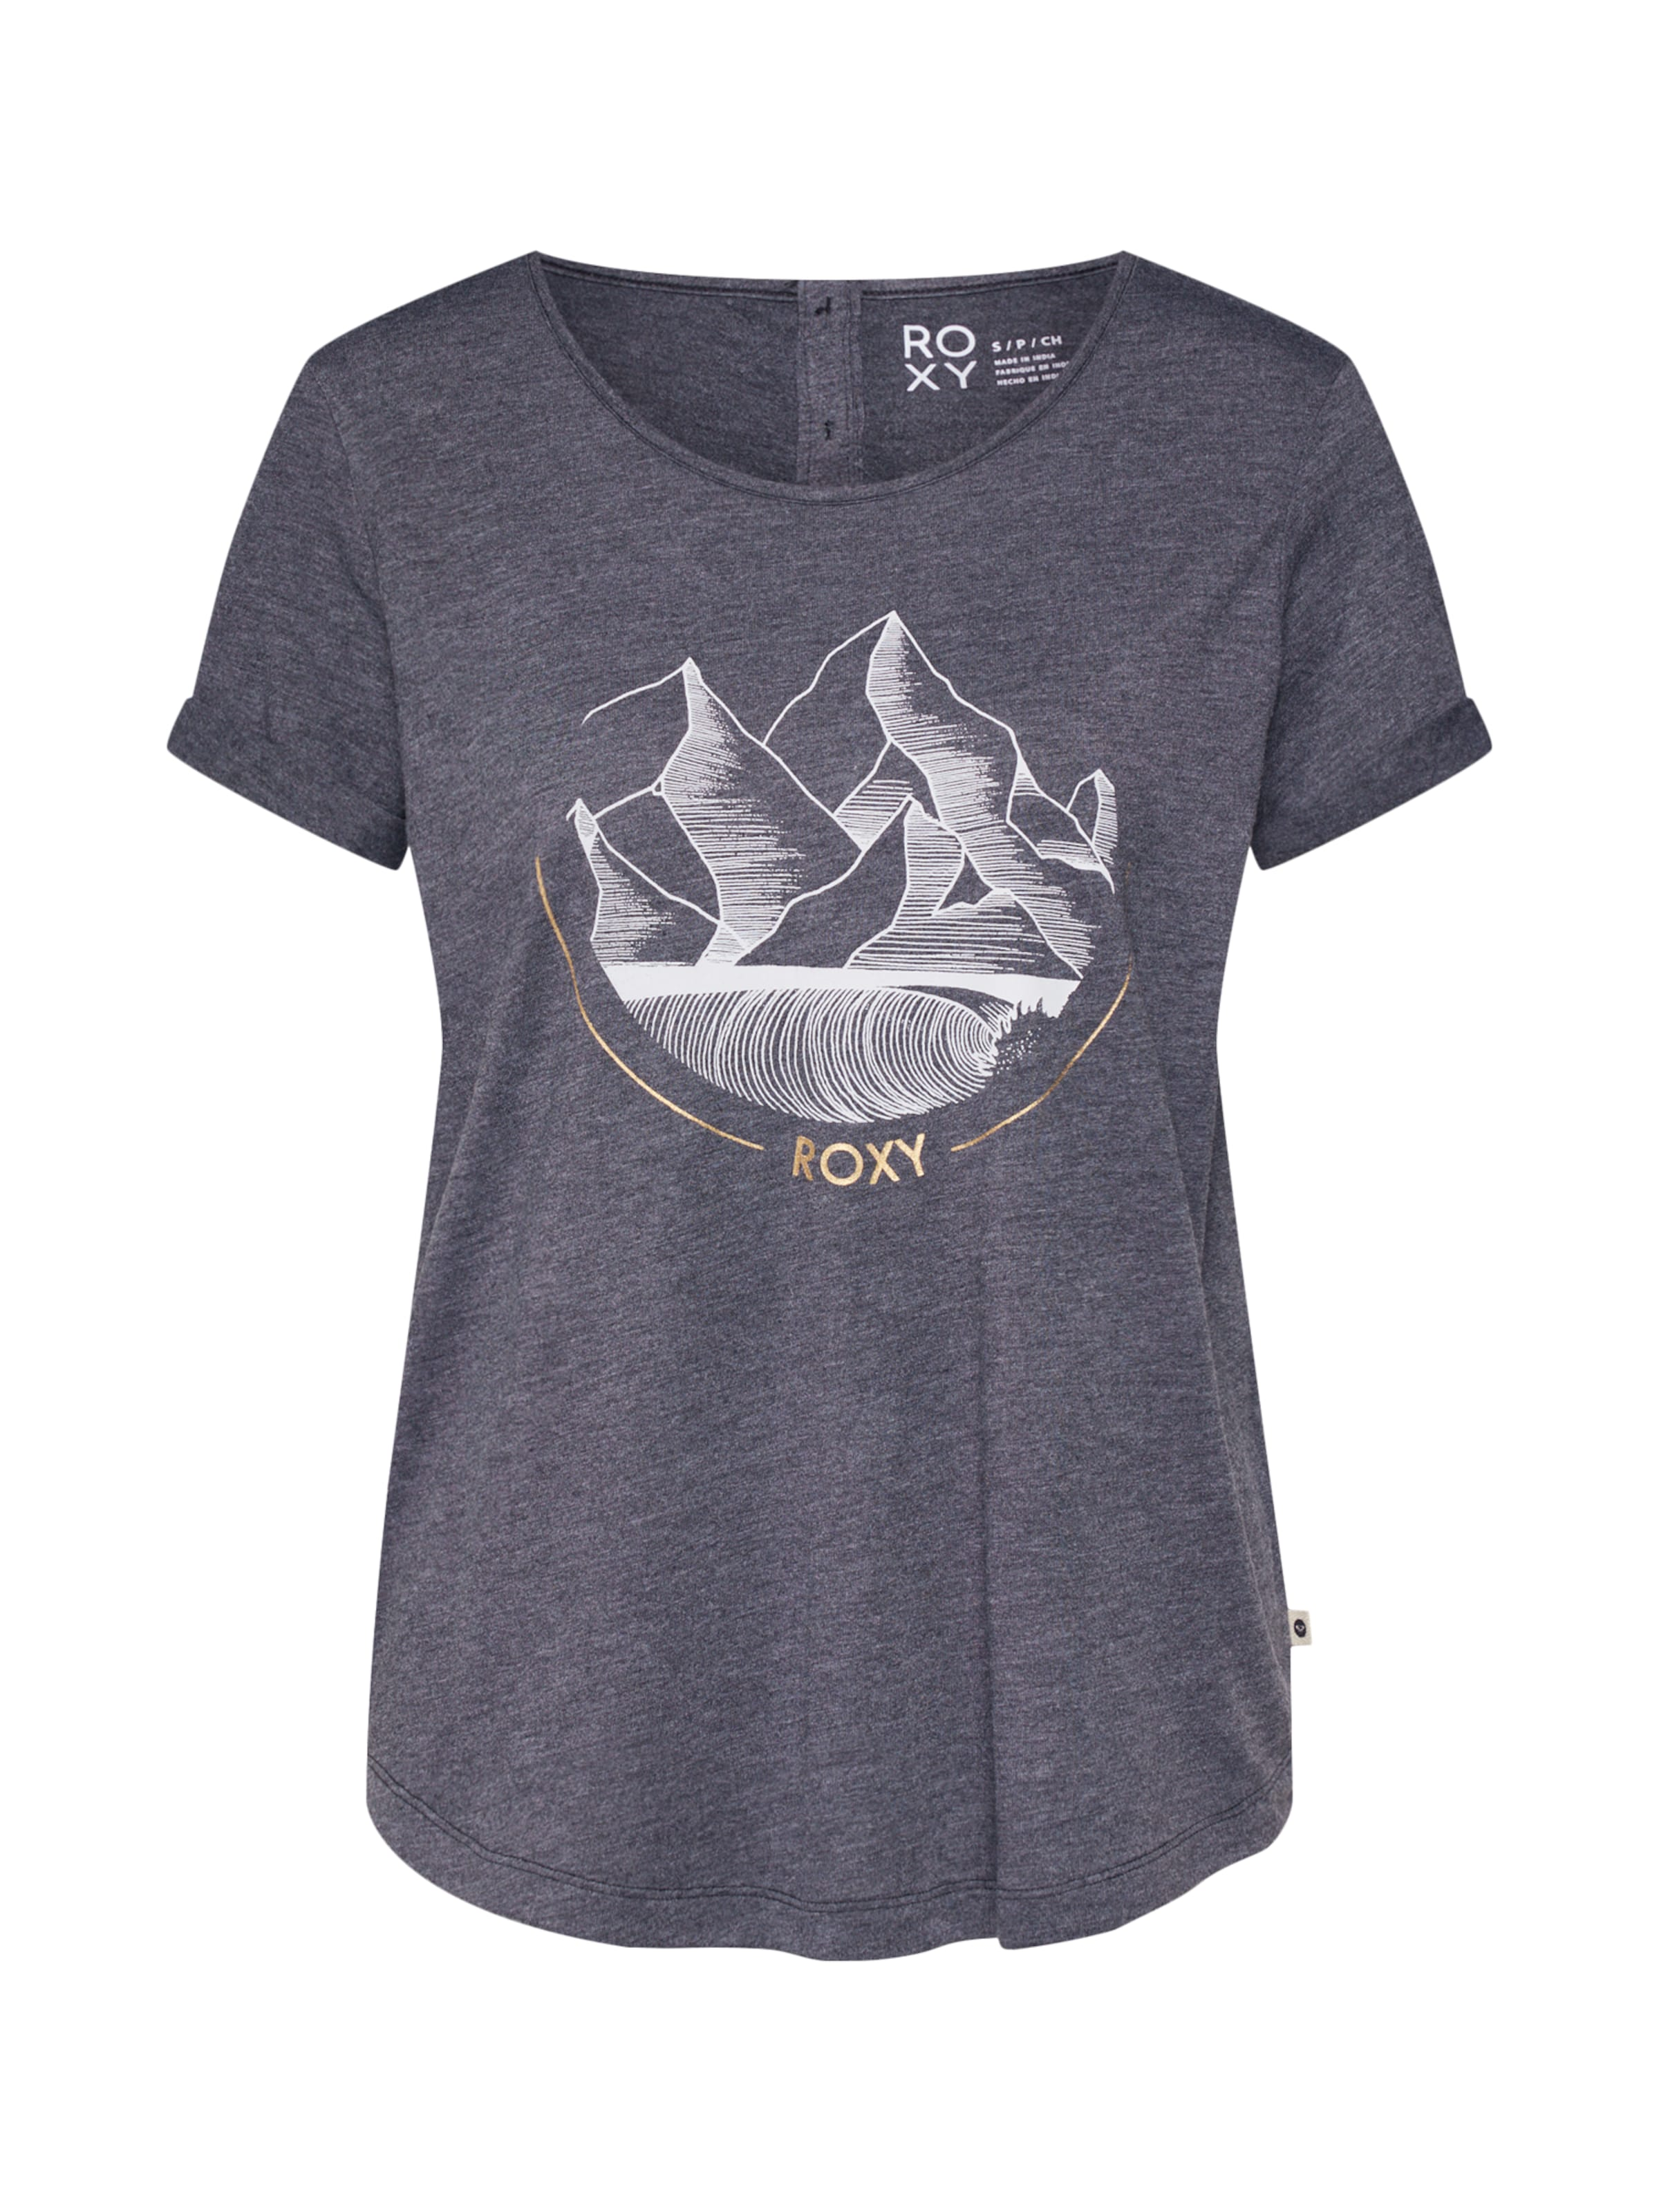 Haut En Dreamin' It Gris FoncéBlanc Roxy 'call v8nwmyN0O